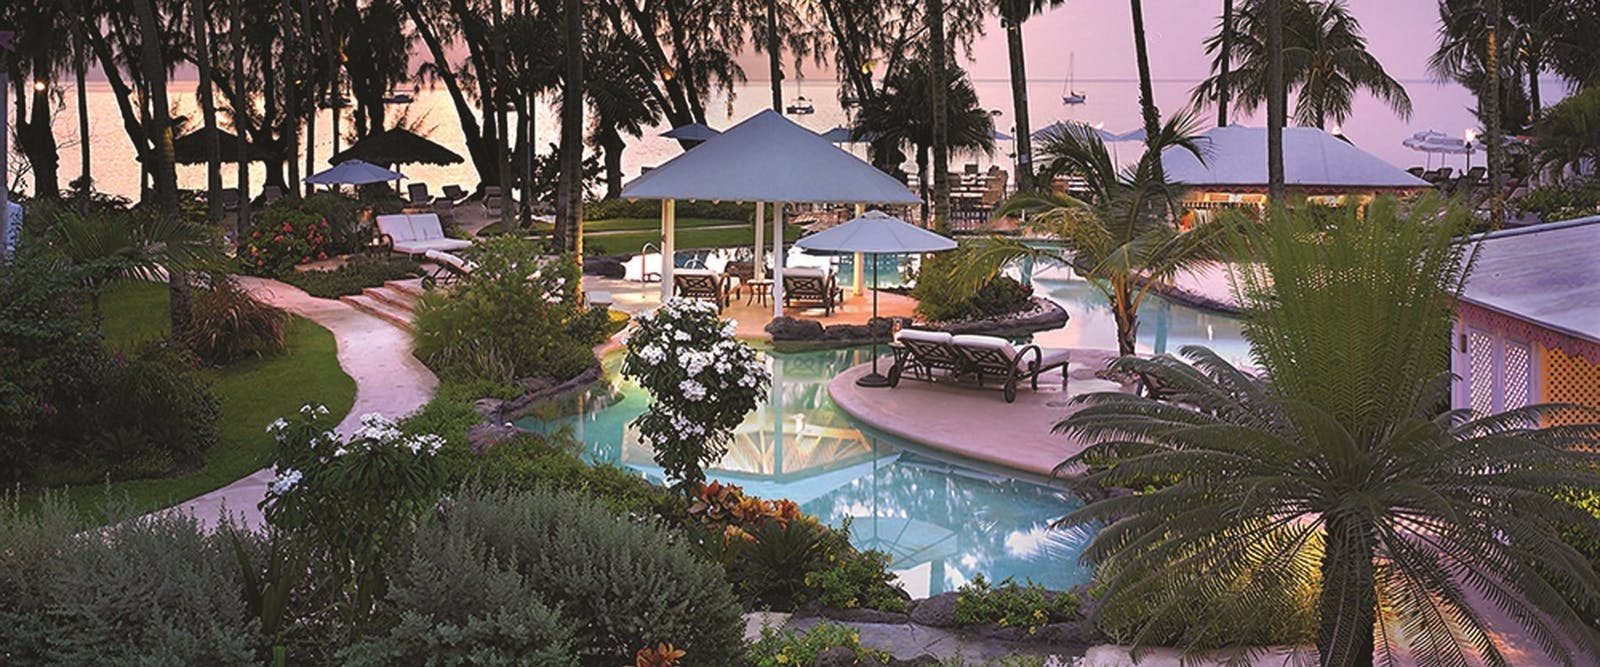 Pool in the evening at Colony Club by Elegant Hotels, Barbados, Caribbean